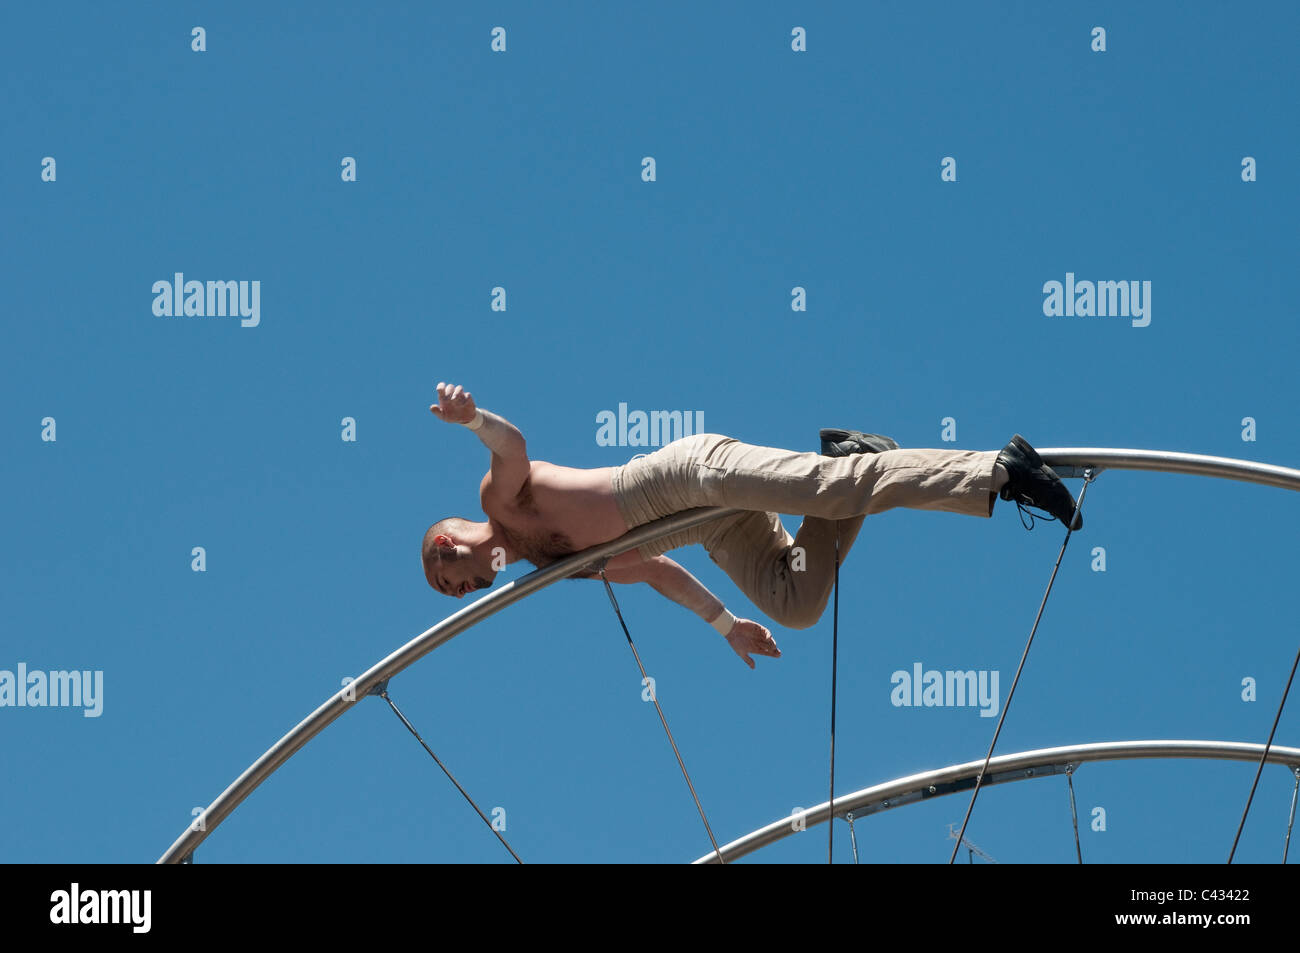 French acrobats perform for Festival of San Isidro, Plaza de la Corrala in Lavapies, Madrid, Spain - Stock Image